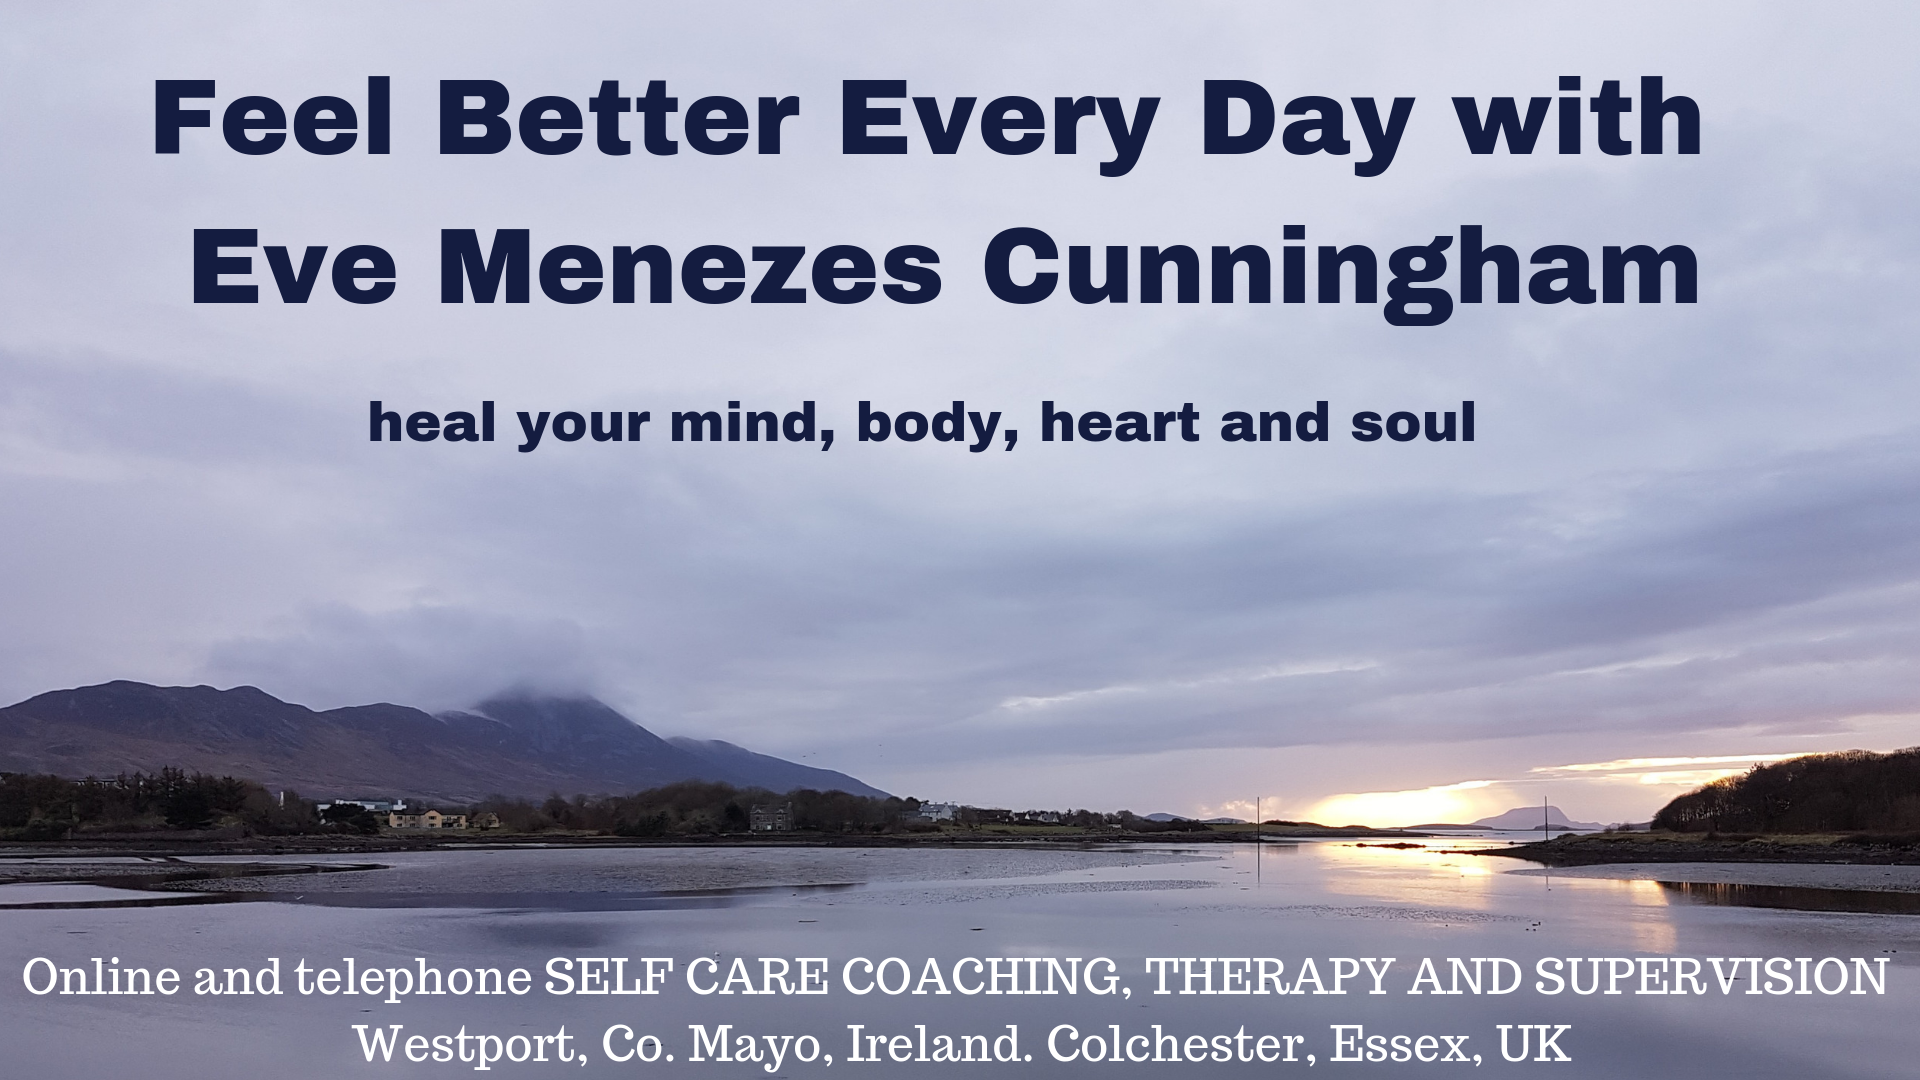 Feel Better Every Day Eve Menezes Cunningham Westport Co Mayo Ireland Colchester Essex online self care coaching therapy and supervision